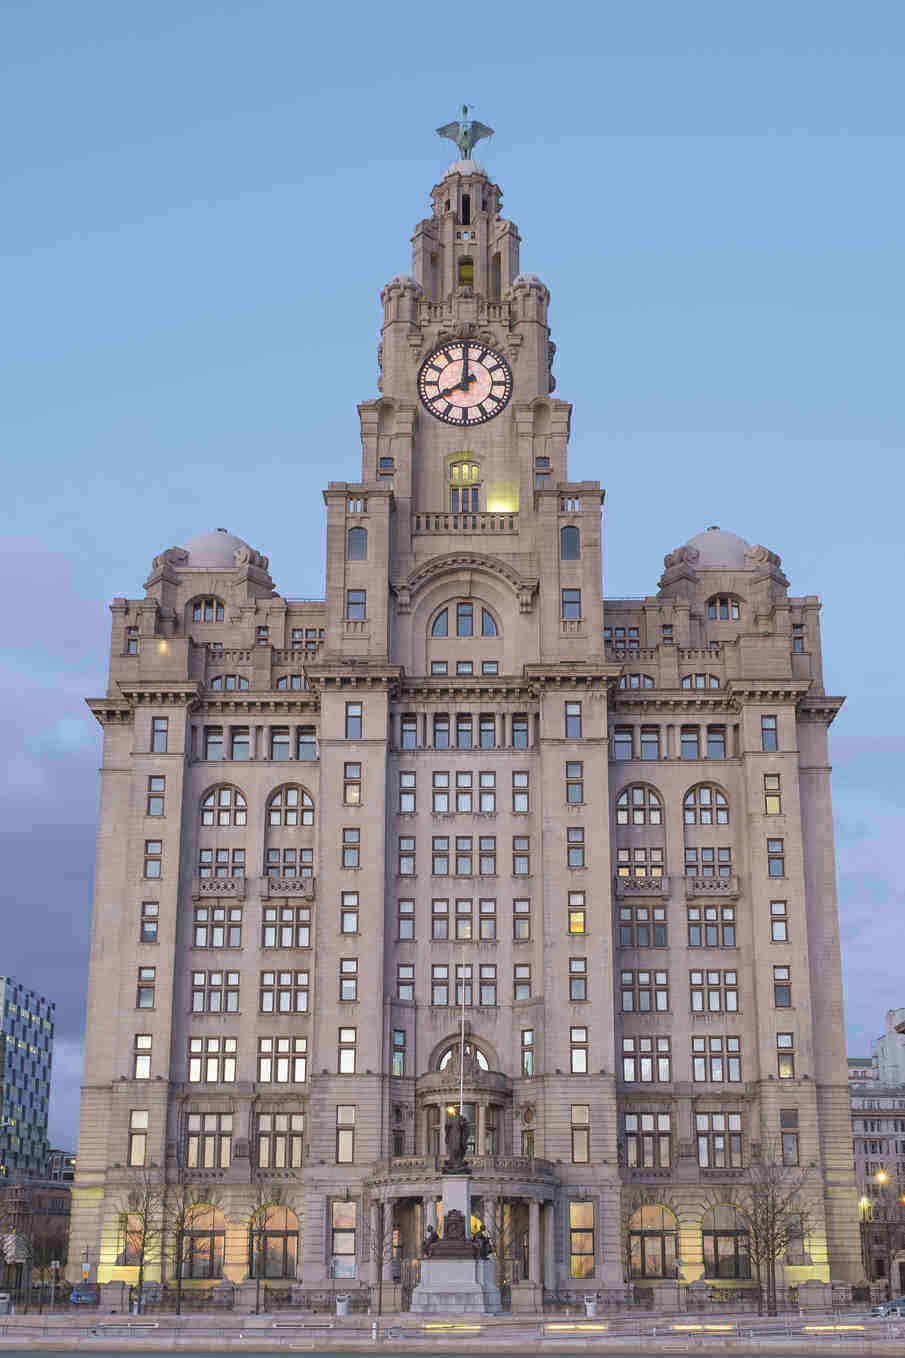 Liverpool Family Holidays - Liver Building